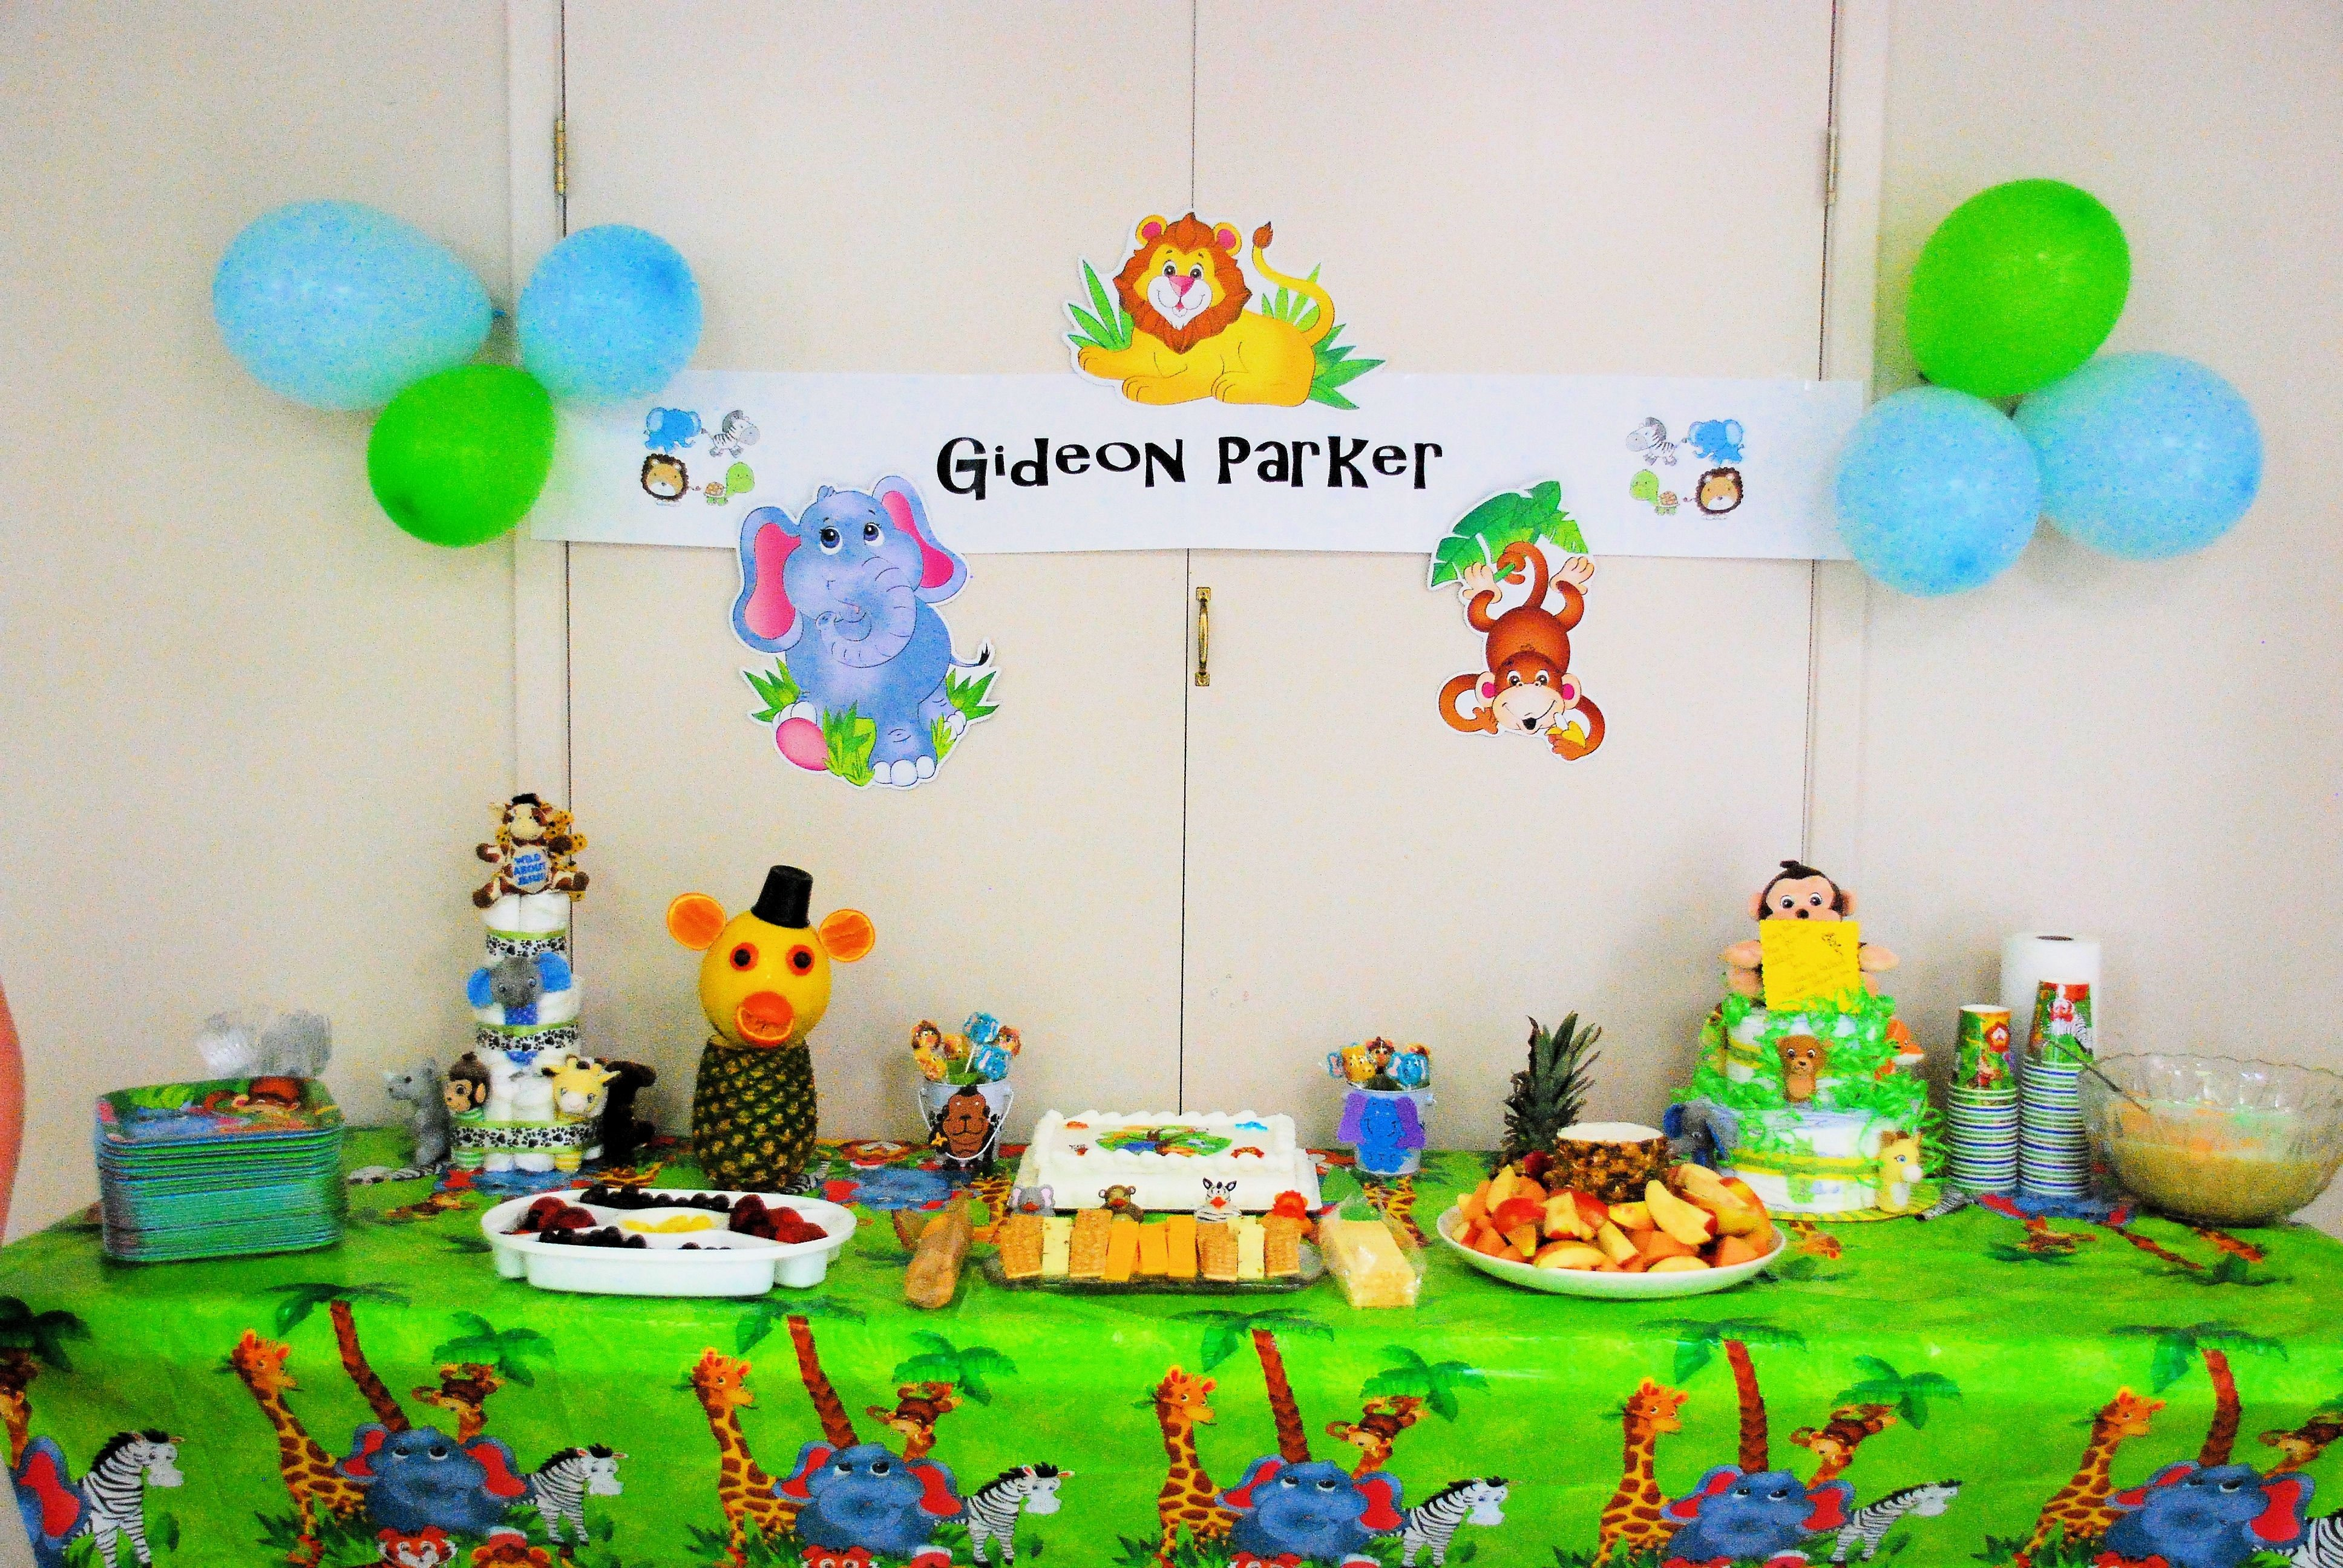 10 Best King Of The Jungle Baby Shower Ideas king of the jungle baby shower decorations the kids love jungle 2020